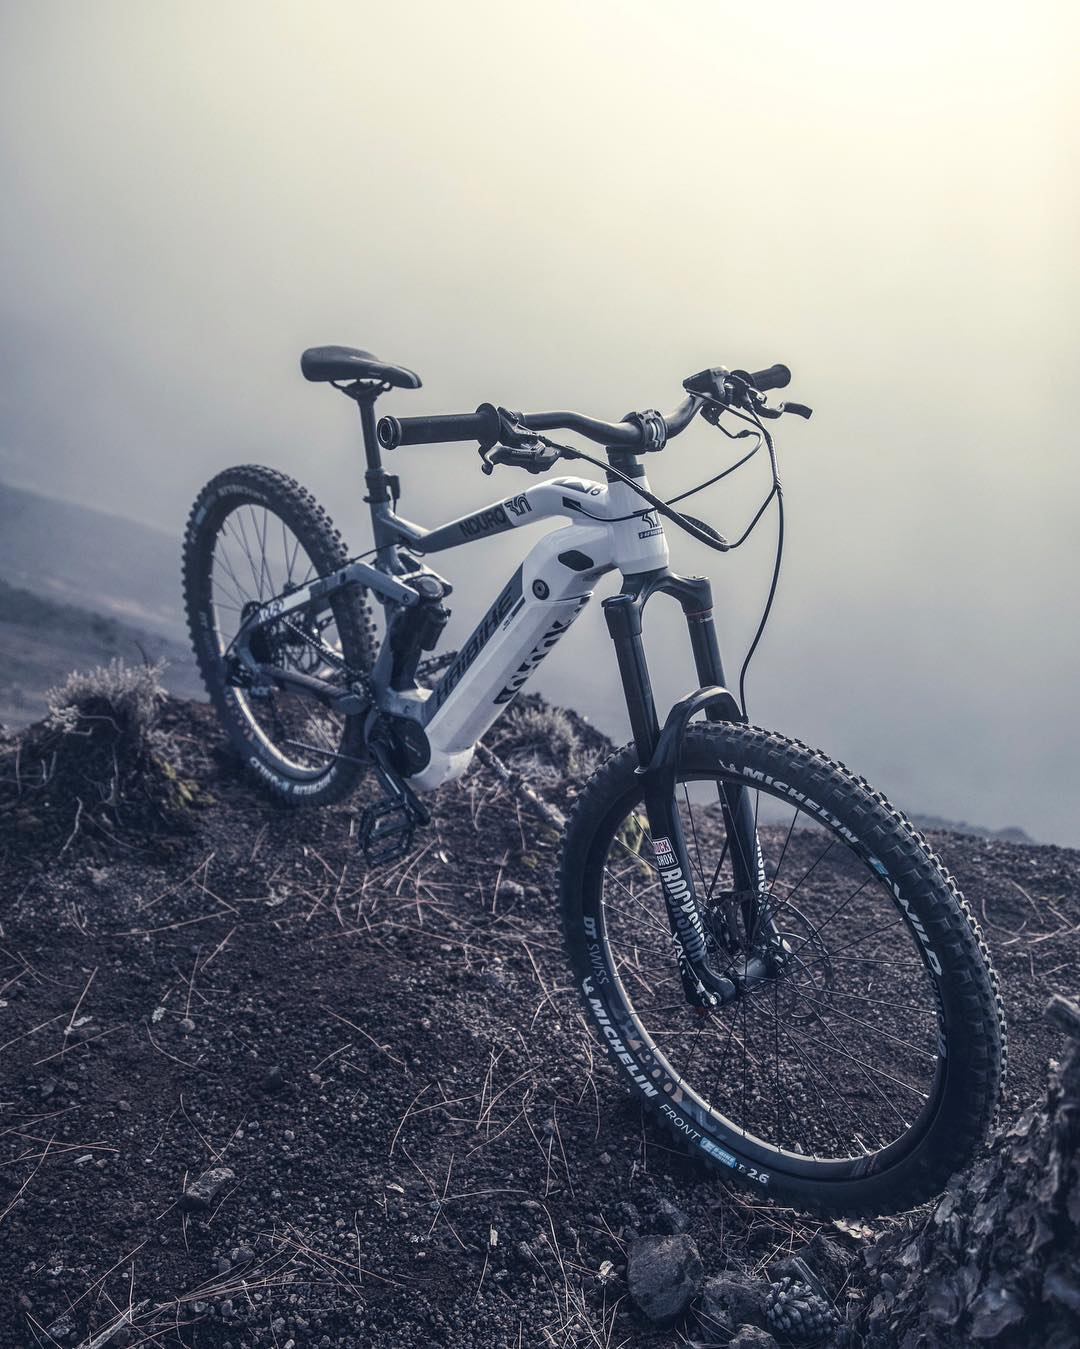 DReAMY! 2019 NDURO 3.0 // 📷 @hdc_m // #enduro #emtb #ebike #mountainbiking